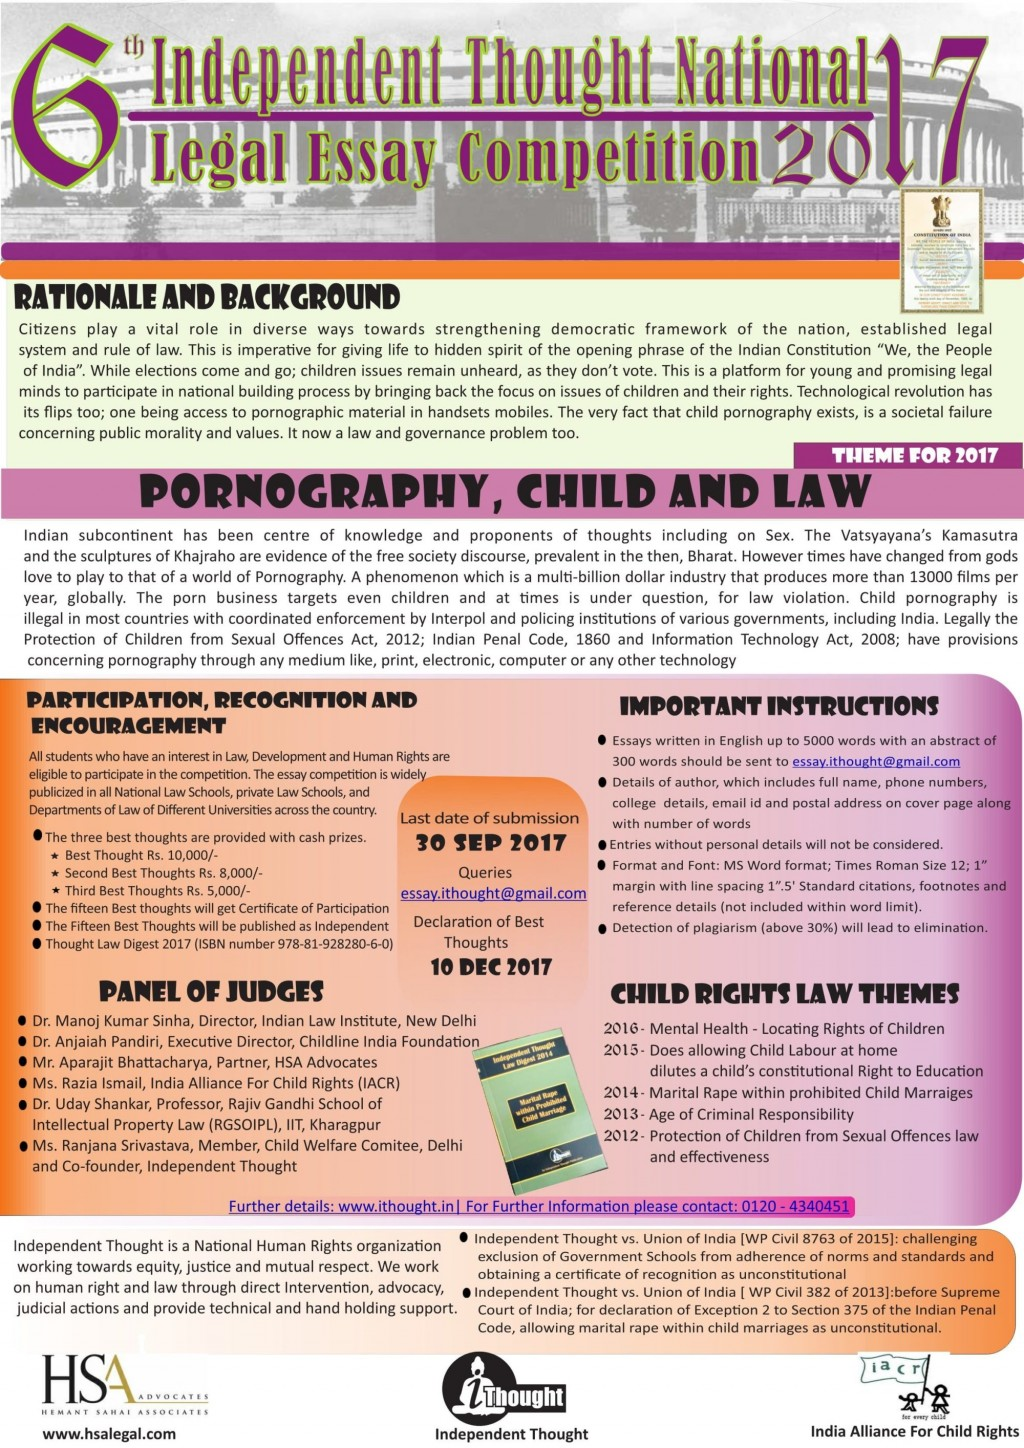 019 Age Of Responsibility Essay Example Poster 6itnlec2017 Final 4july2017 Awful Persuasive Argumentative Criminal Large